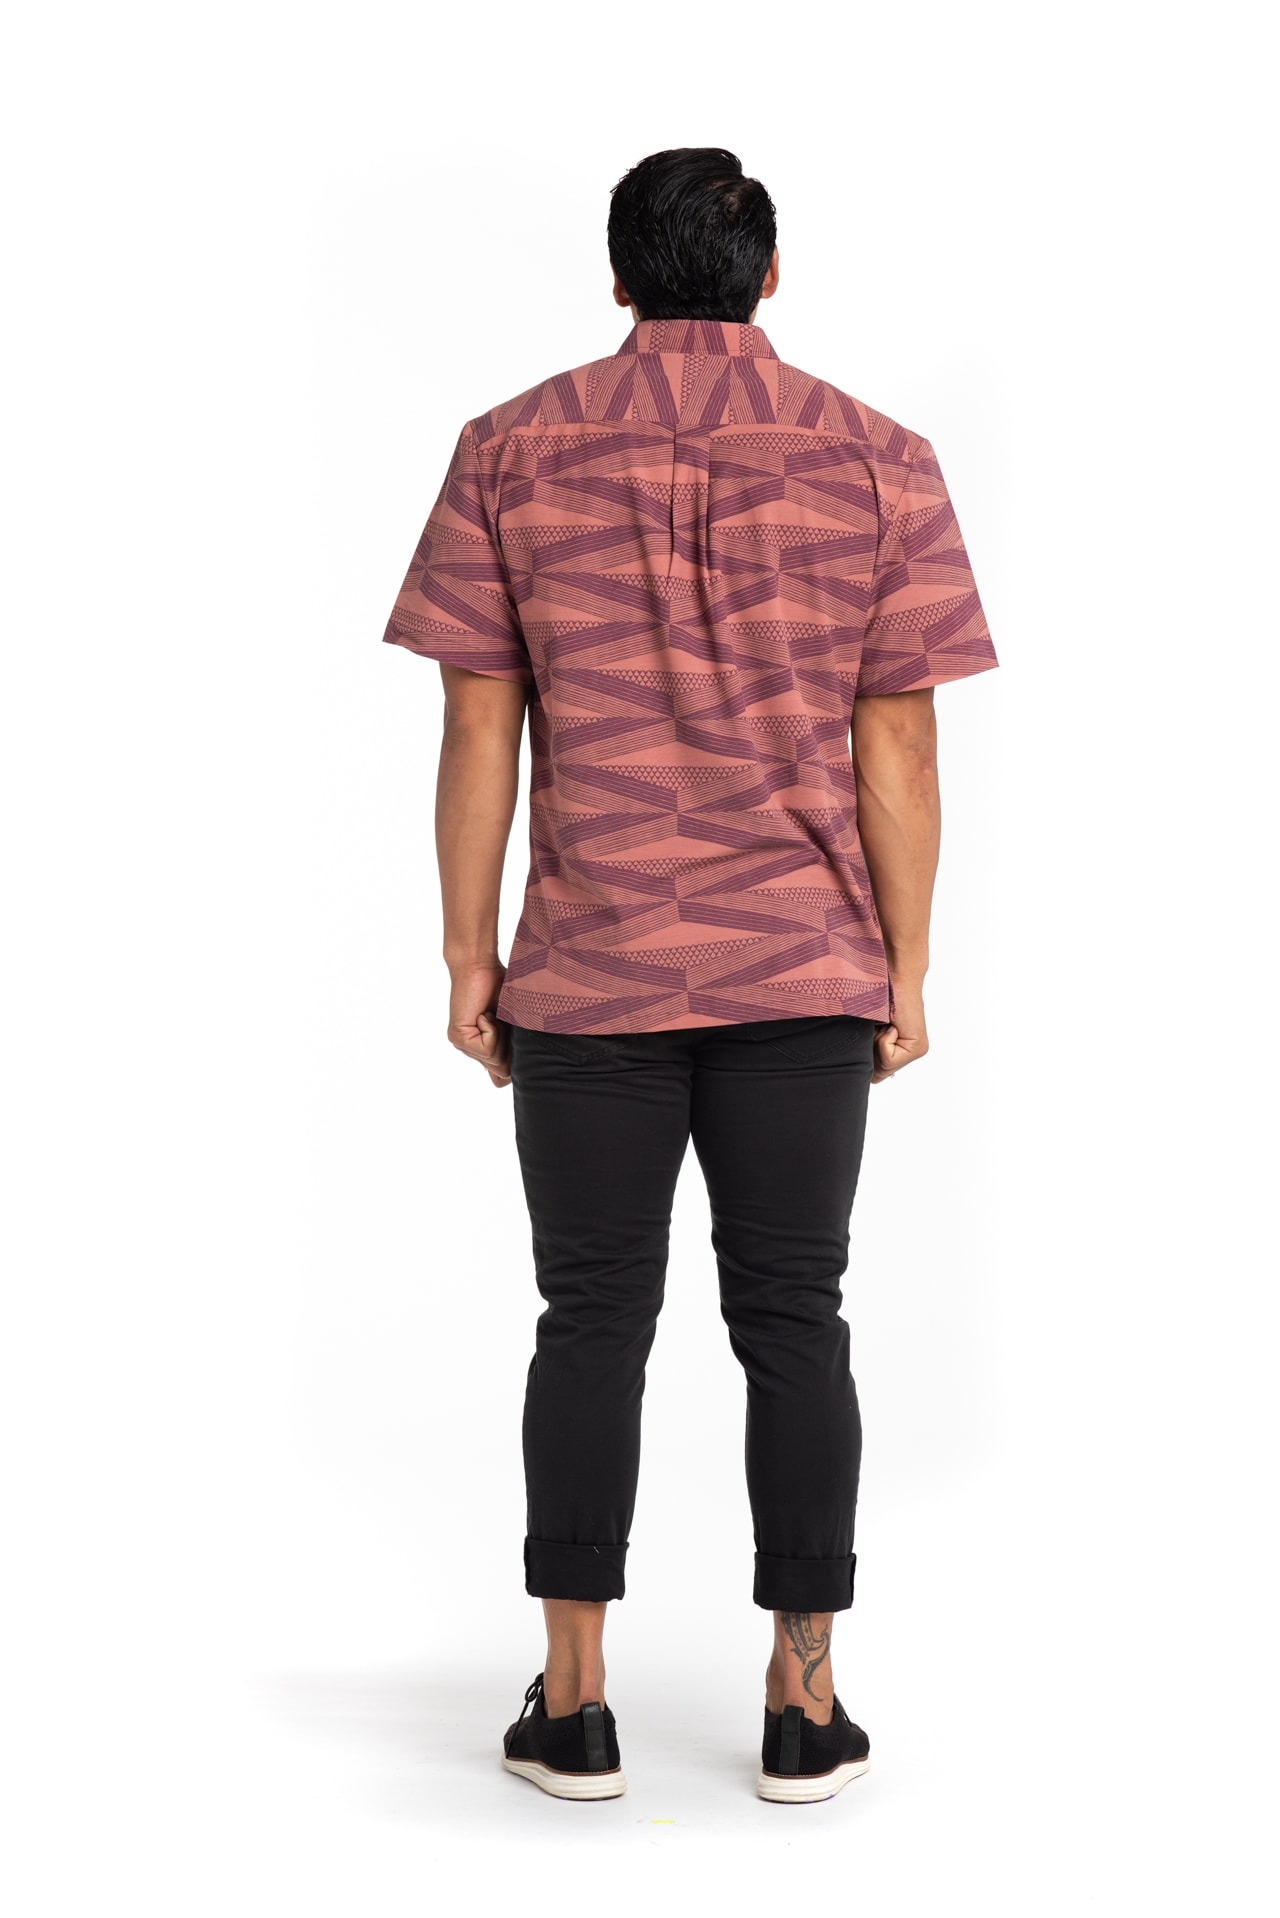 Male Model wearing Mahalo Nui Shirt in Copper - Back View